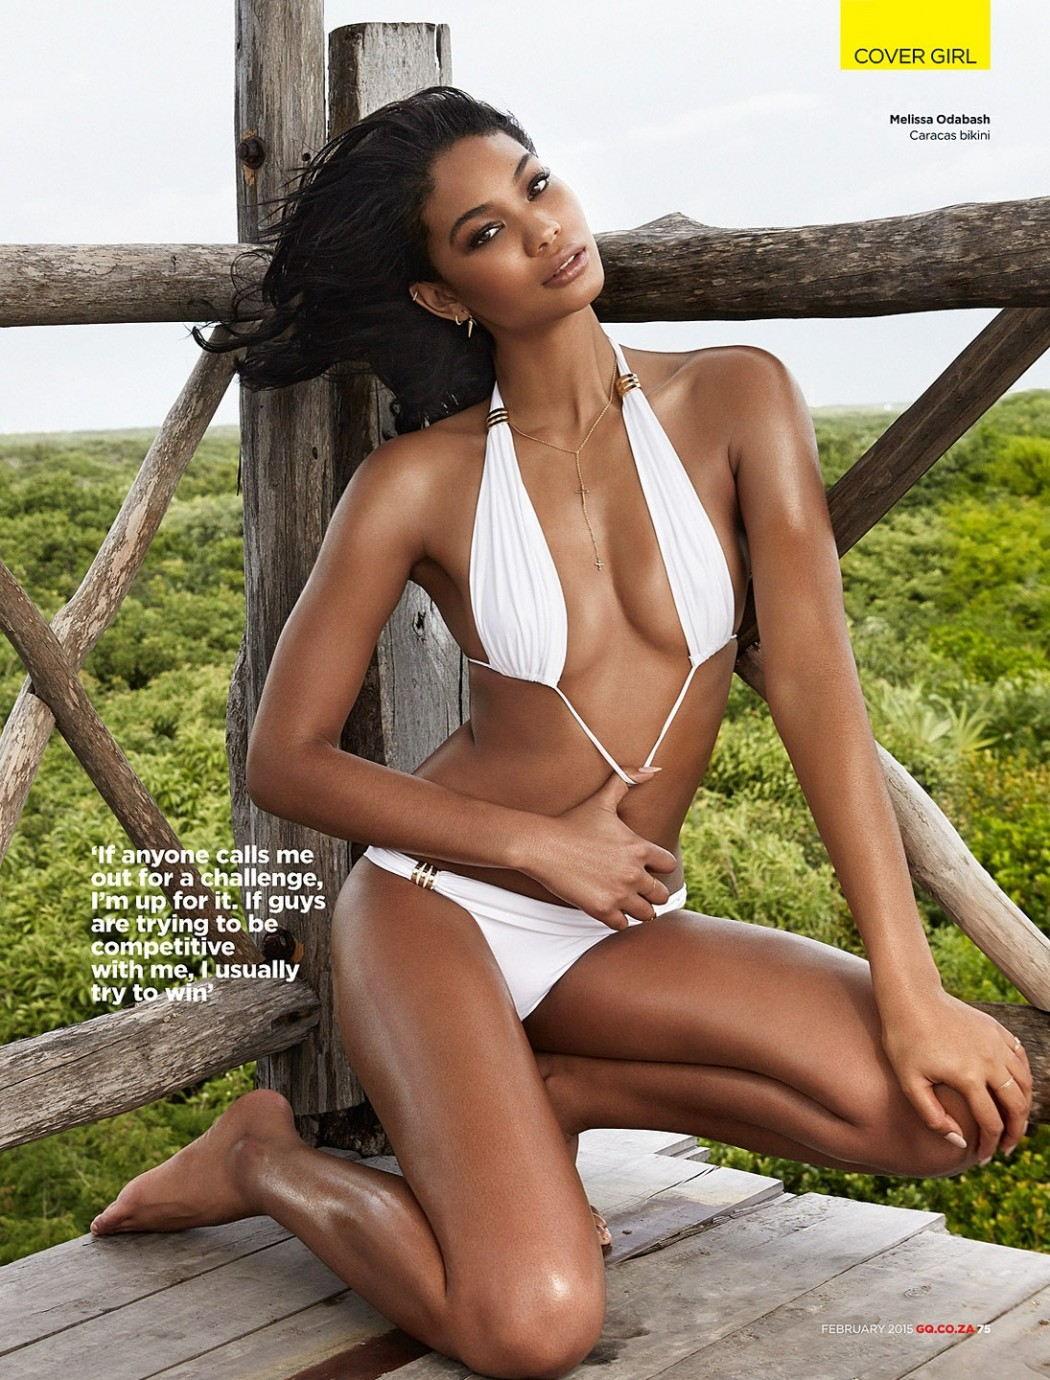 chanel-iman-gq-south-africa-february-2015-gavin-o-neil-03-1050x1380